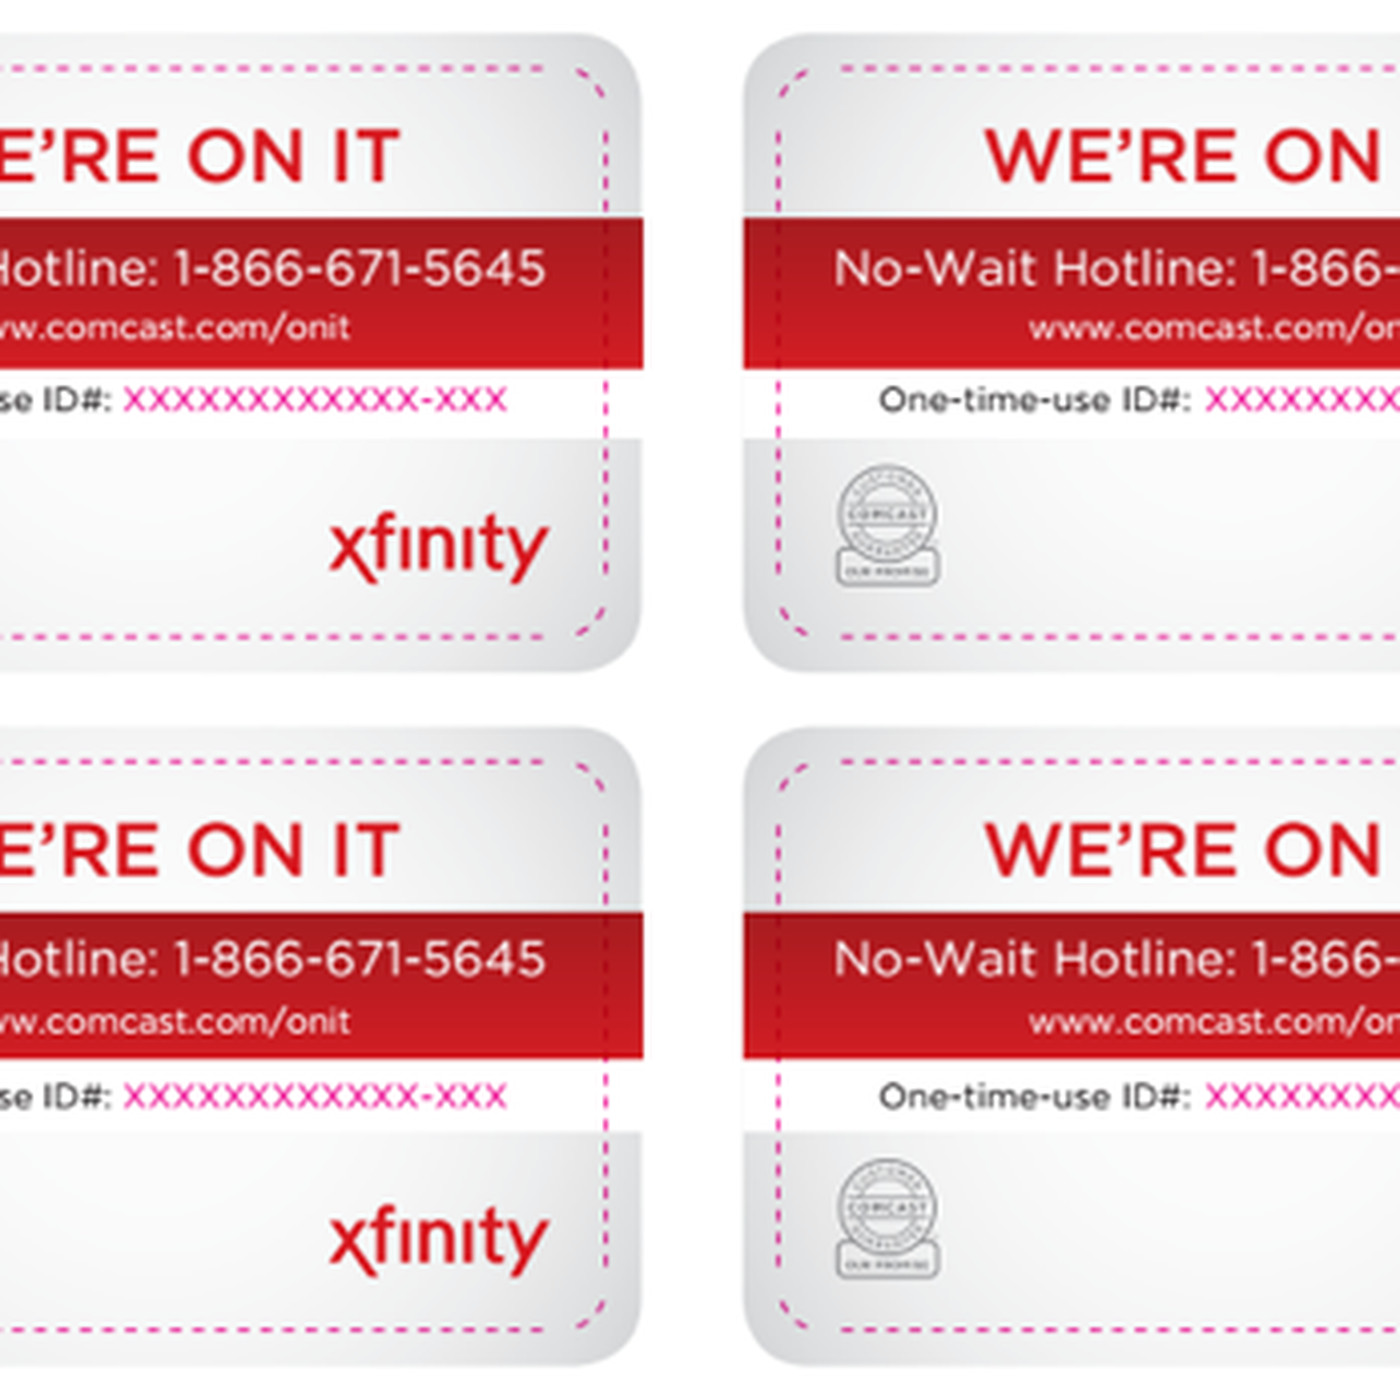 Get through to Comcast's semi-secret customer service line with one of  these special cards - The Verge